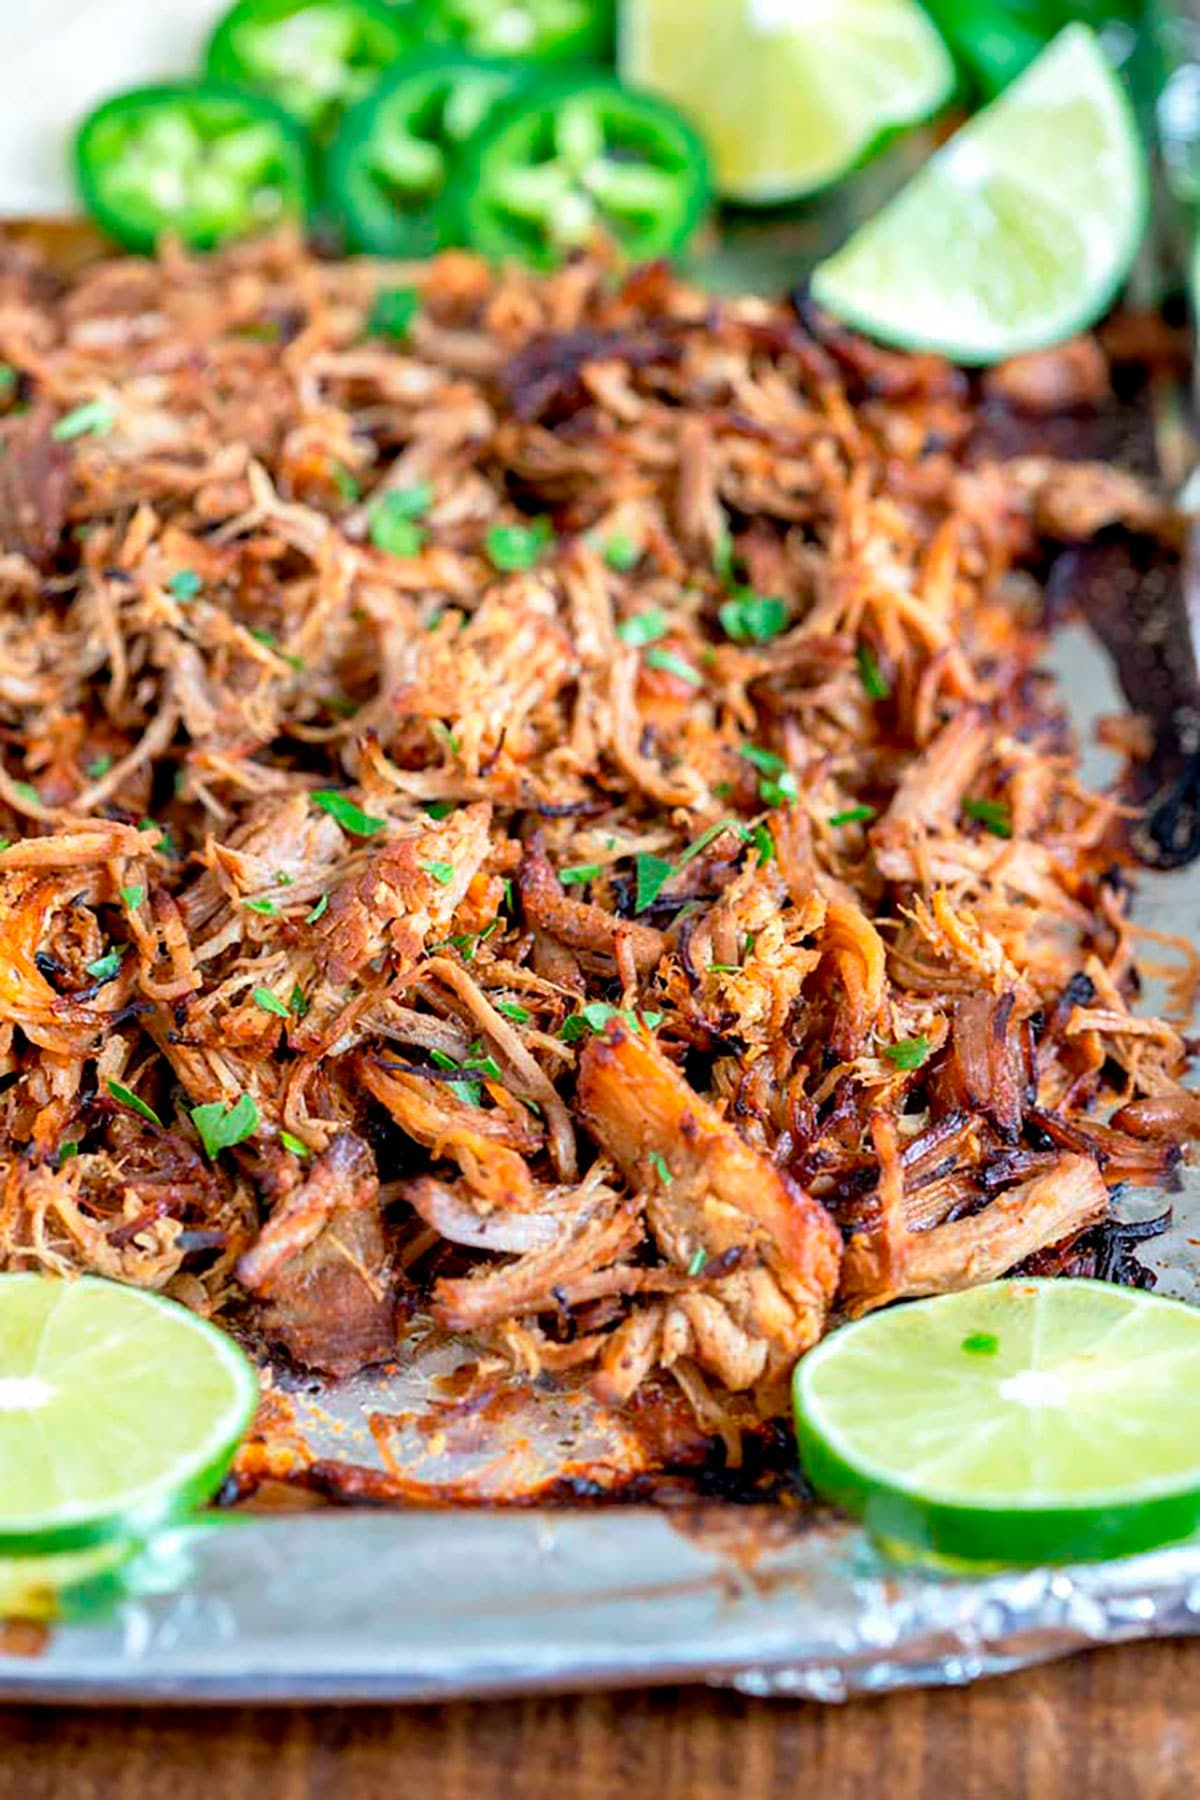 A baking sheet filled with Mexican Carnitas